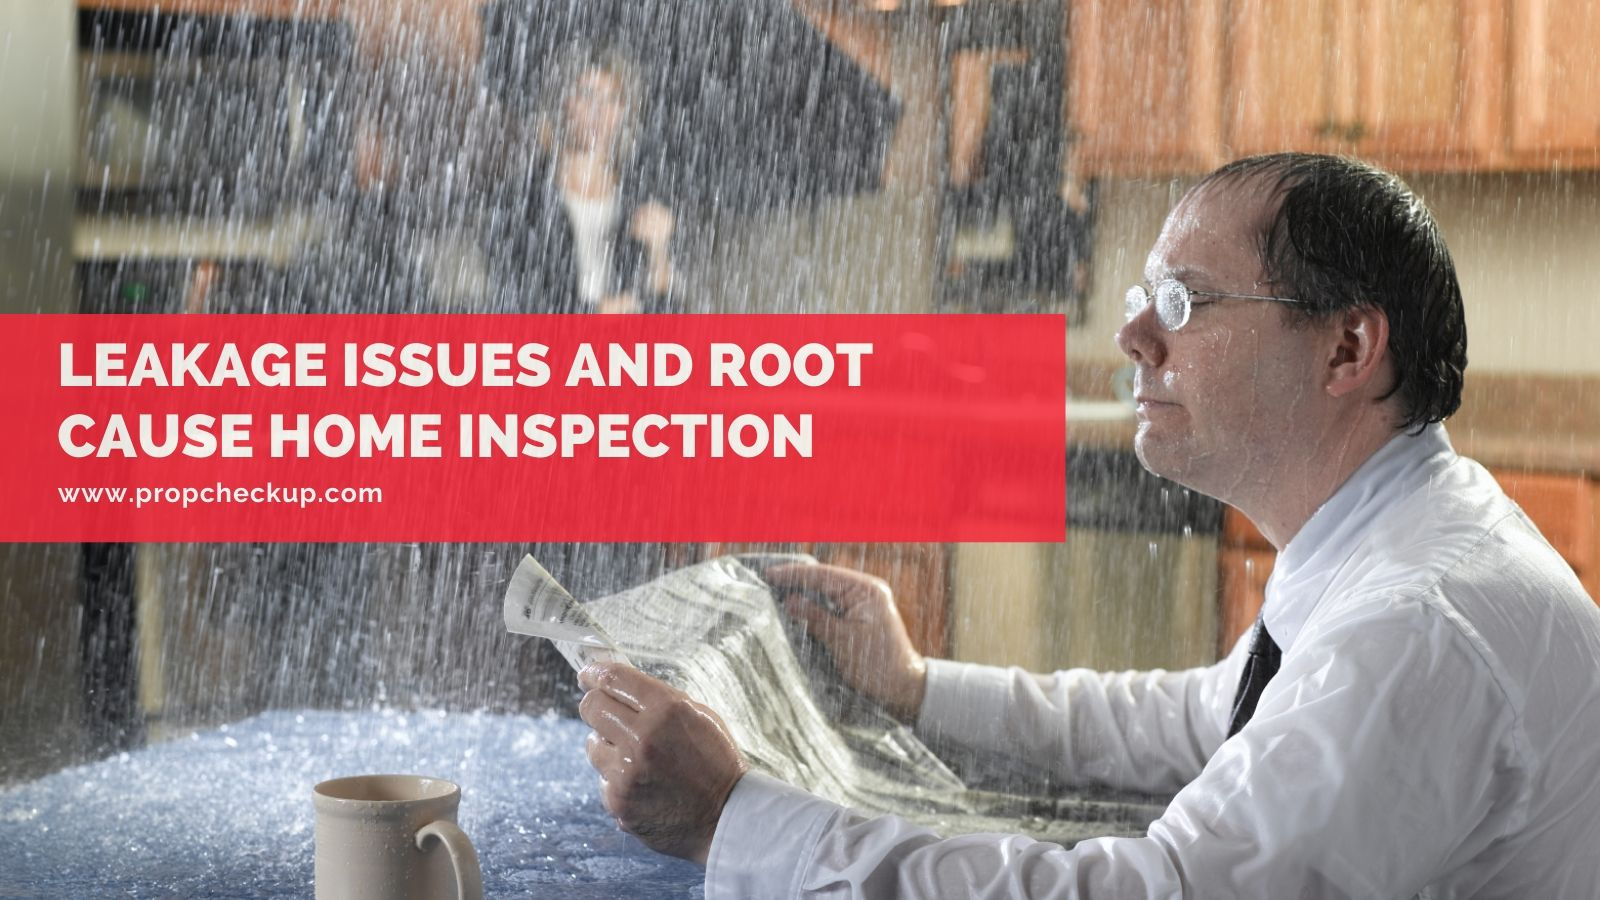 Leakage Issues and Root Cause Home Inspection